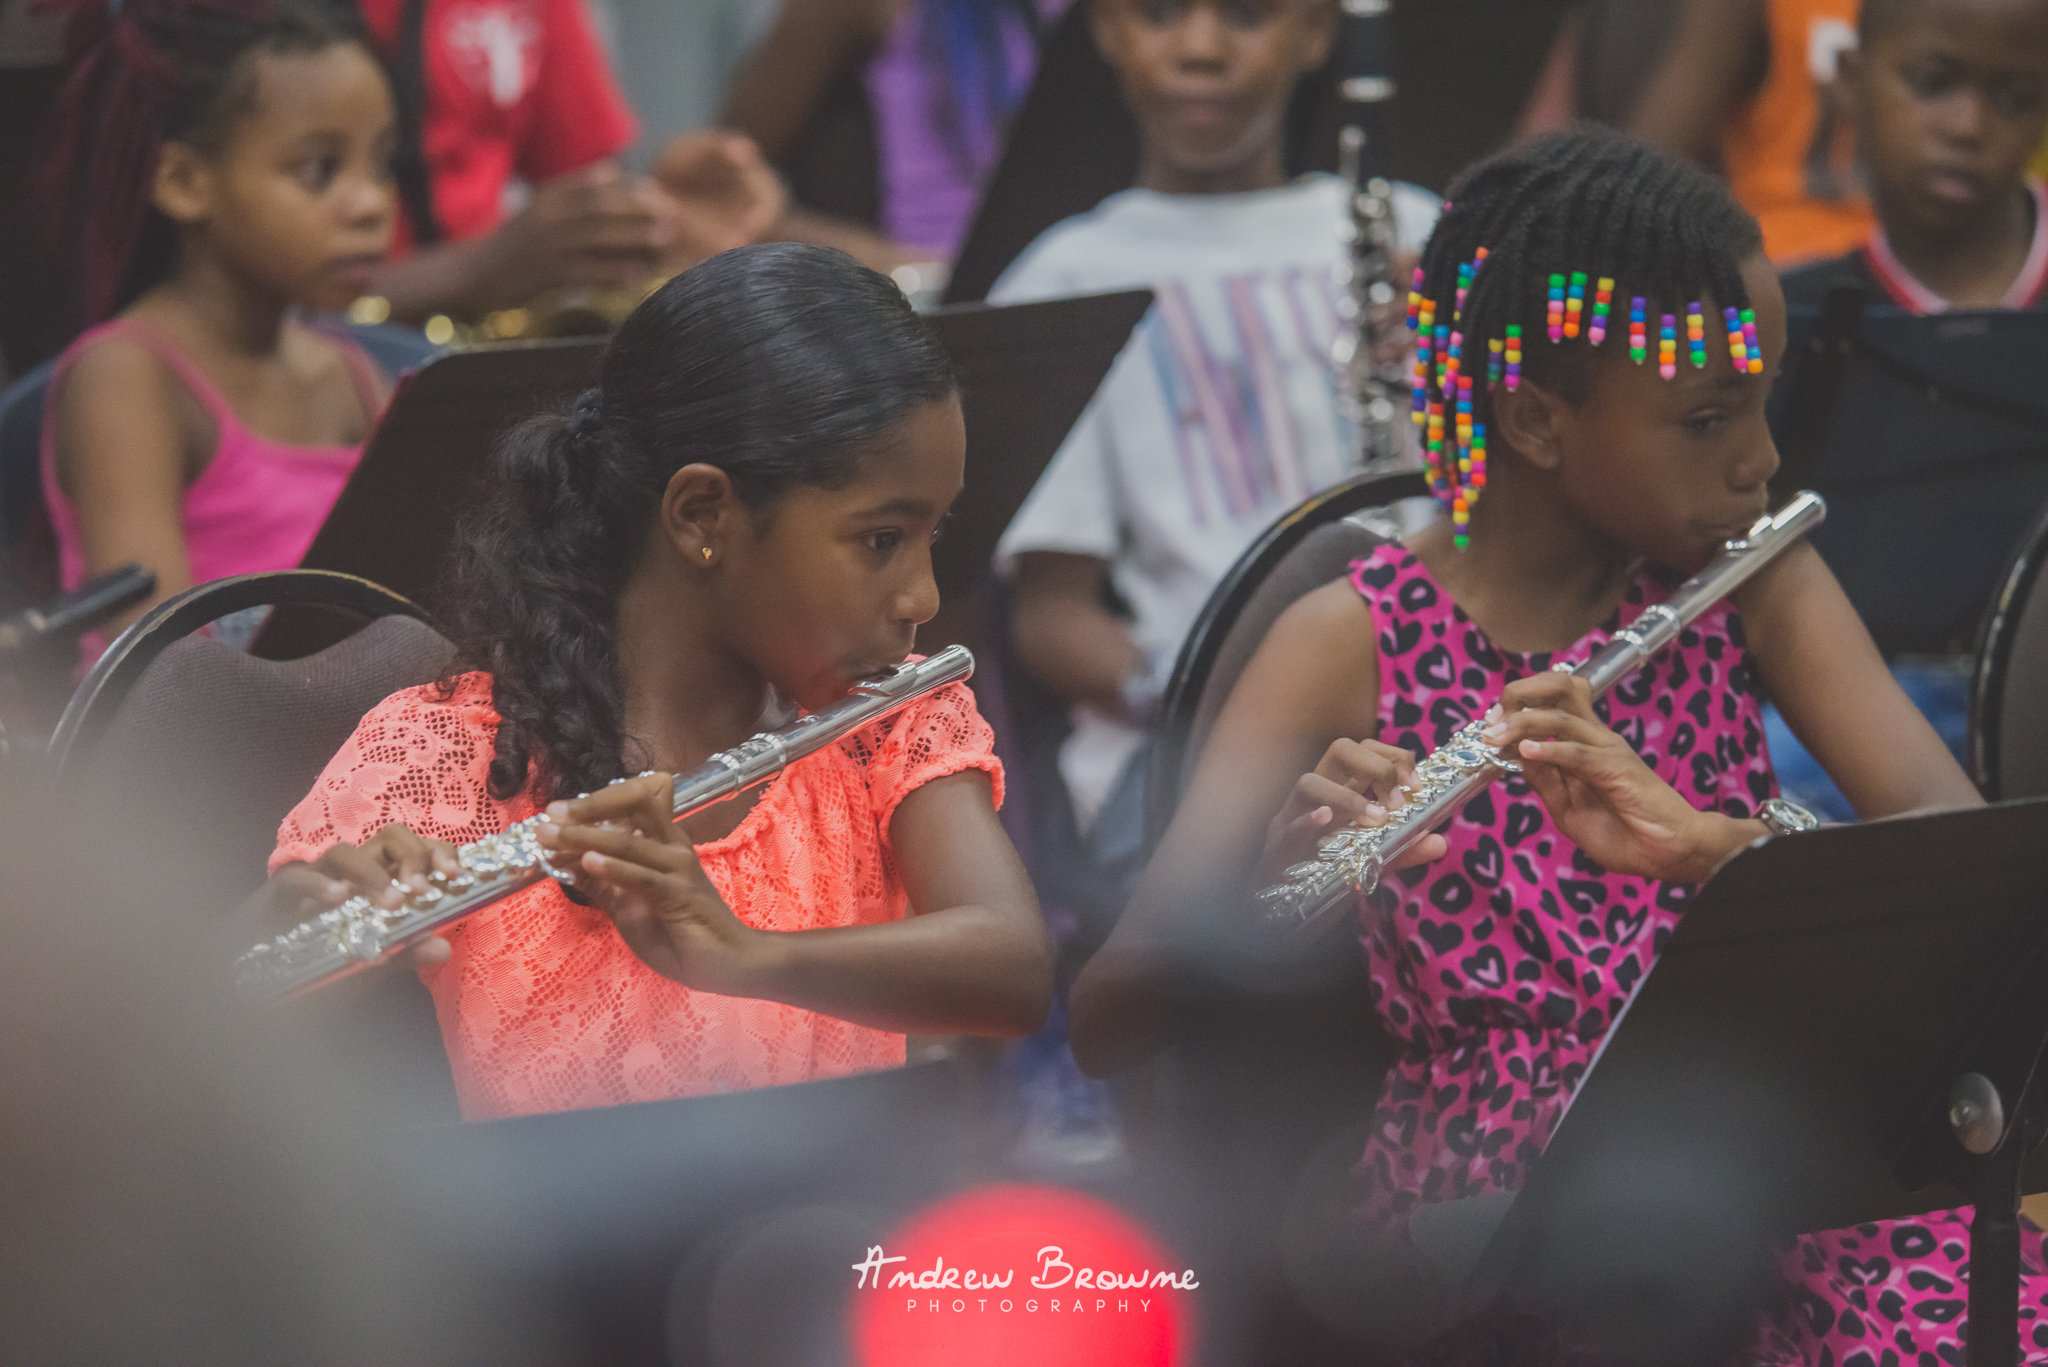 View More: http://andrewbrownephotos.pass.us/headstart-music-barbados-closing